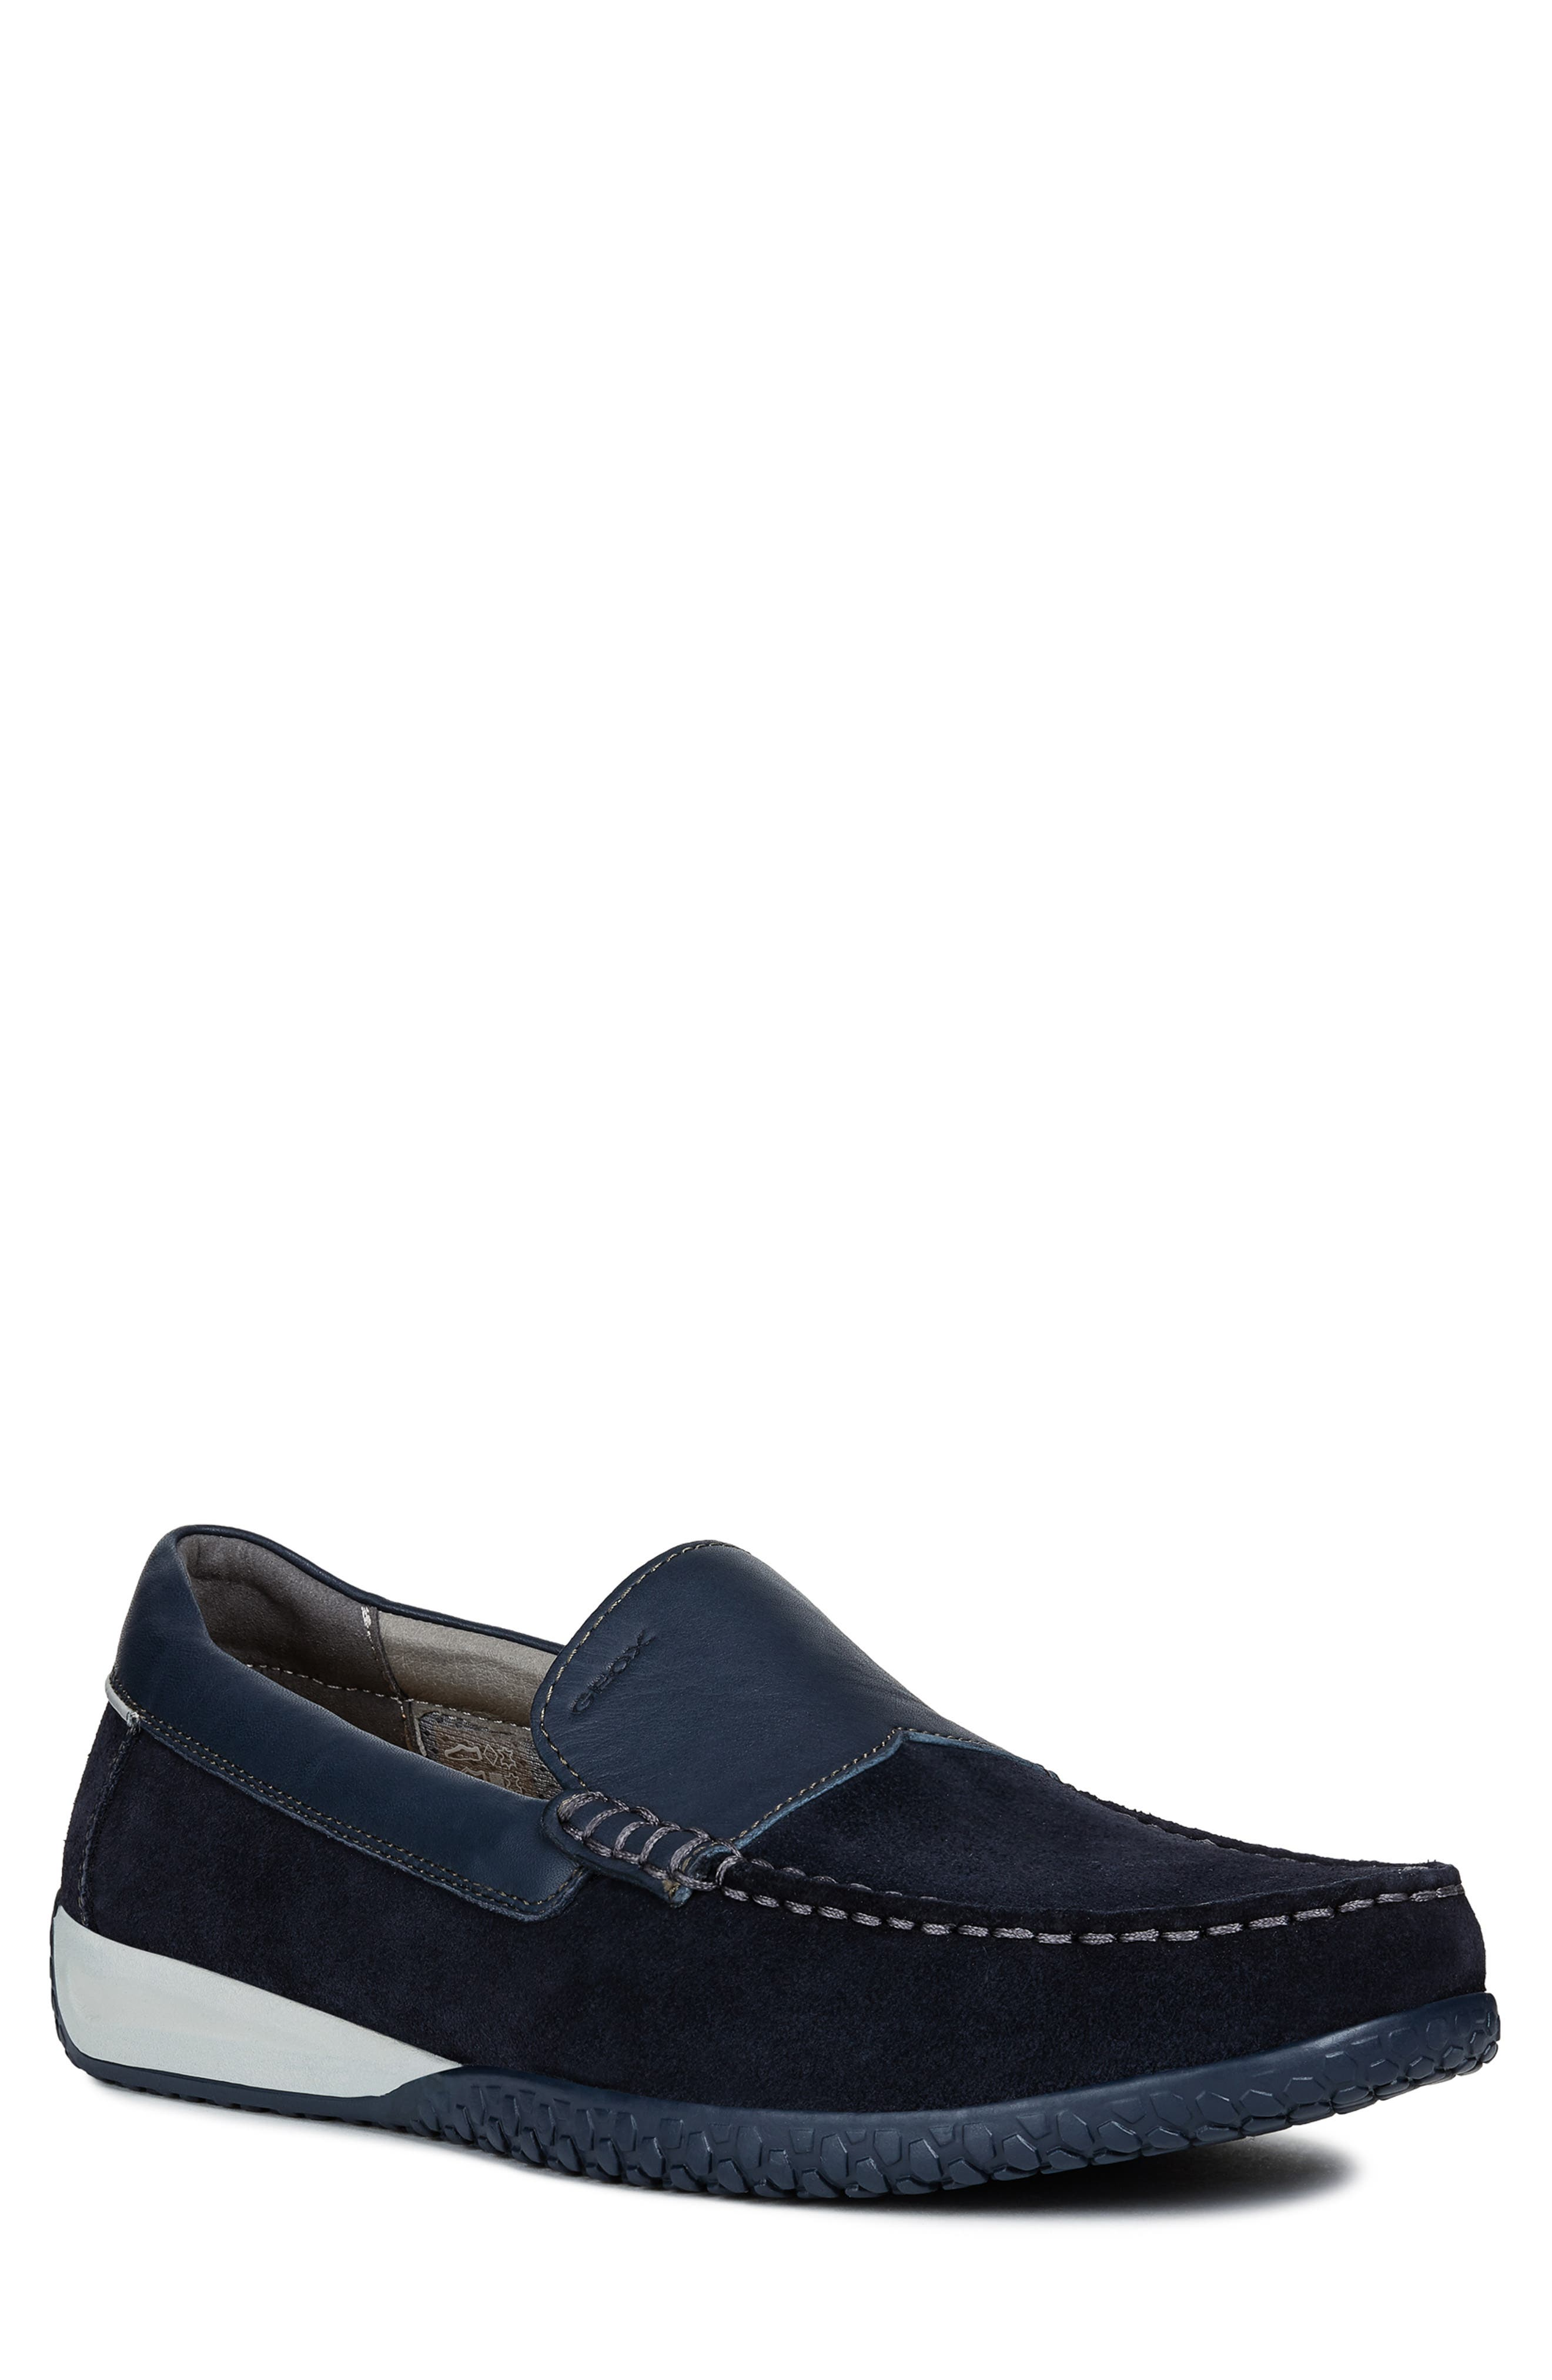 GEOX Delrick 2 Slip-On, Main, color, NAVY SUEDE/ LEATHER